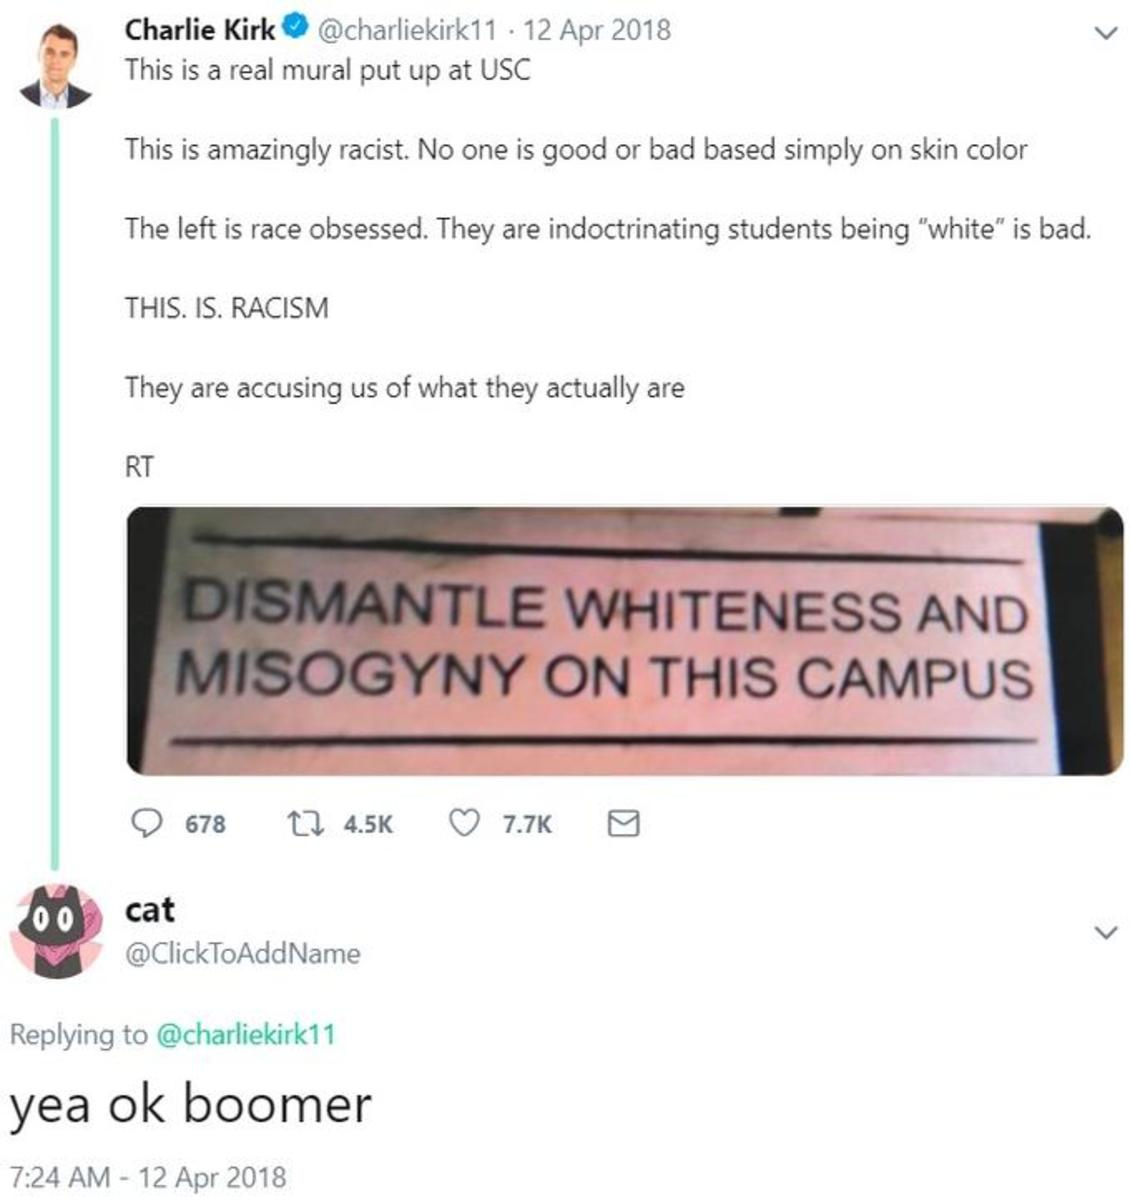 ok-boomer-whats-that-all-about